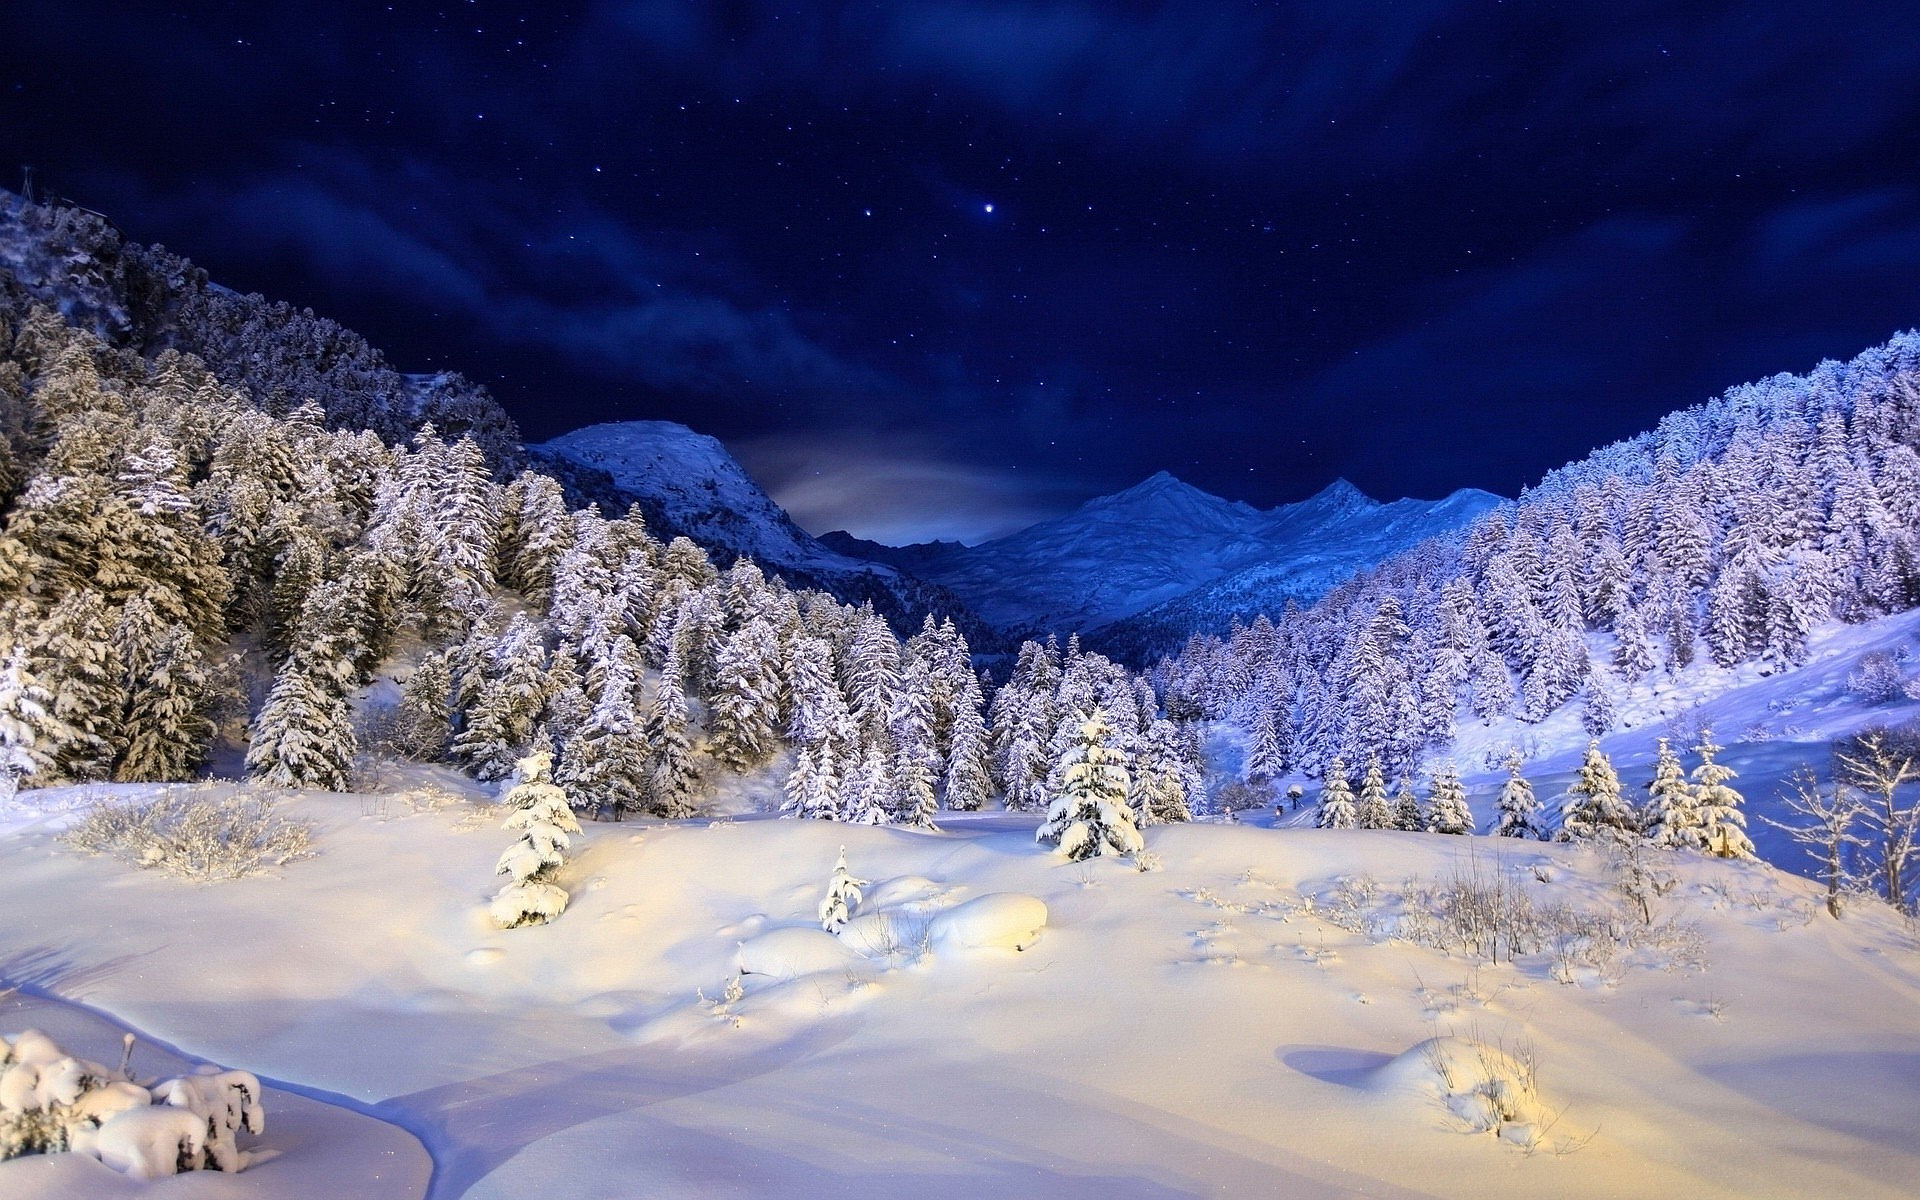 Night Winter Mountain Scenes Wallpapers Winter Snow Night Mountains 985115 Hd Wallpaper Backgrounds Download